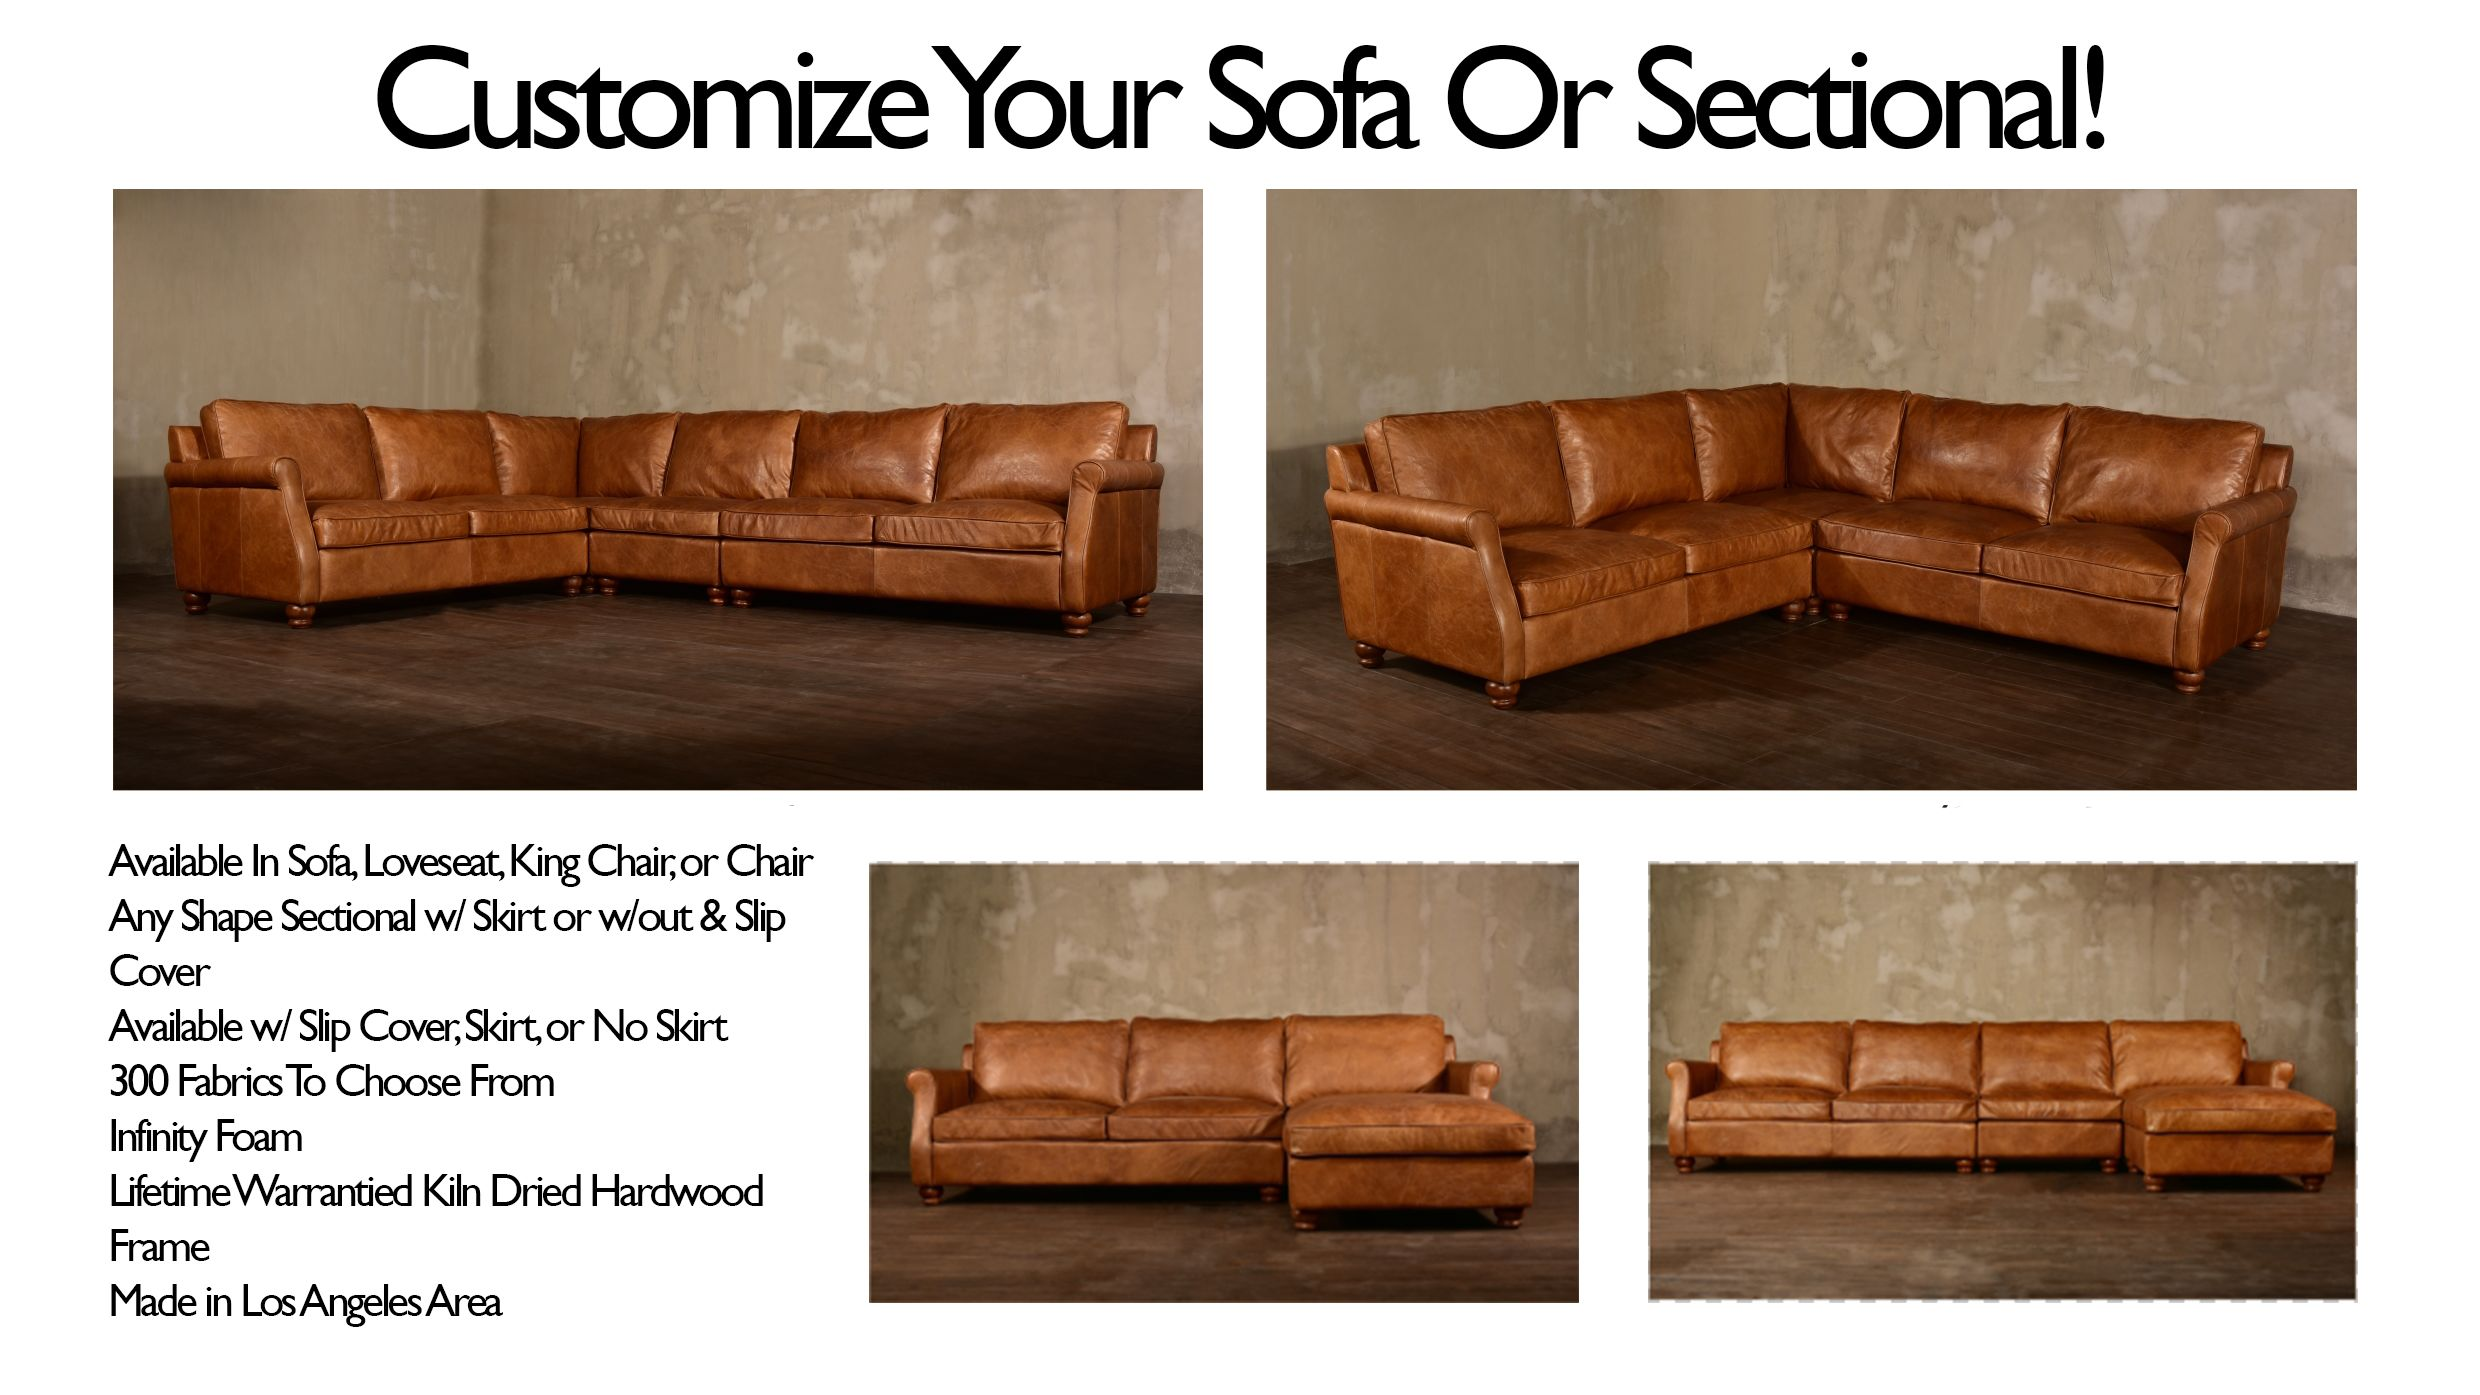 best of macy's furniture sofa picture-Inspirational Macy's Furniture sofa Picture